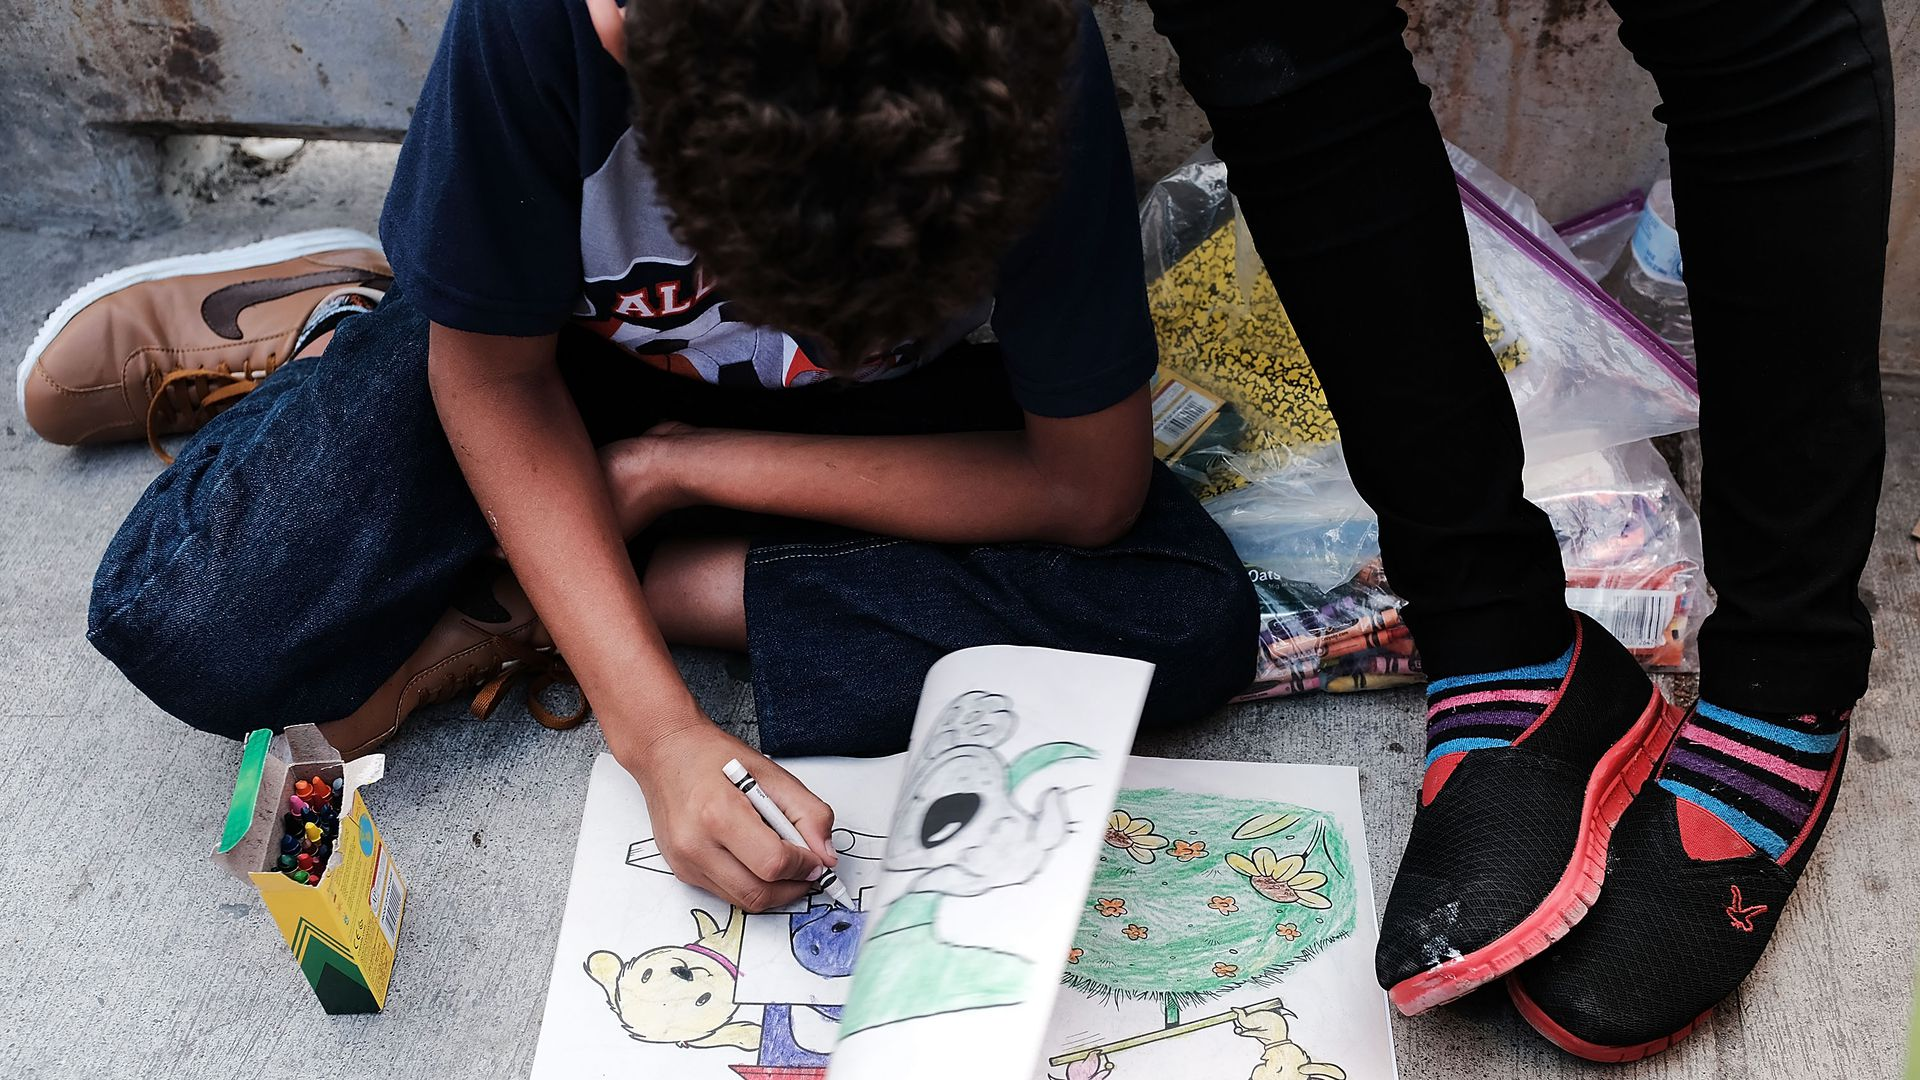 A Honduran child draws while waiting with his family after being denied entry into the Texas city of Brownsville which has become dependent on the daily crossing into and out of Mexico.